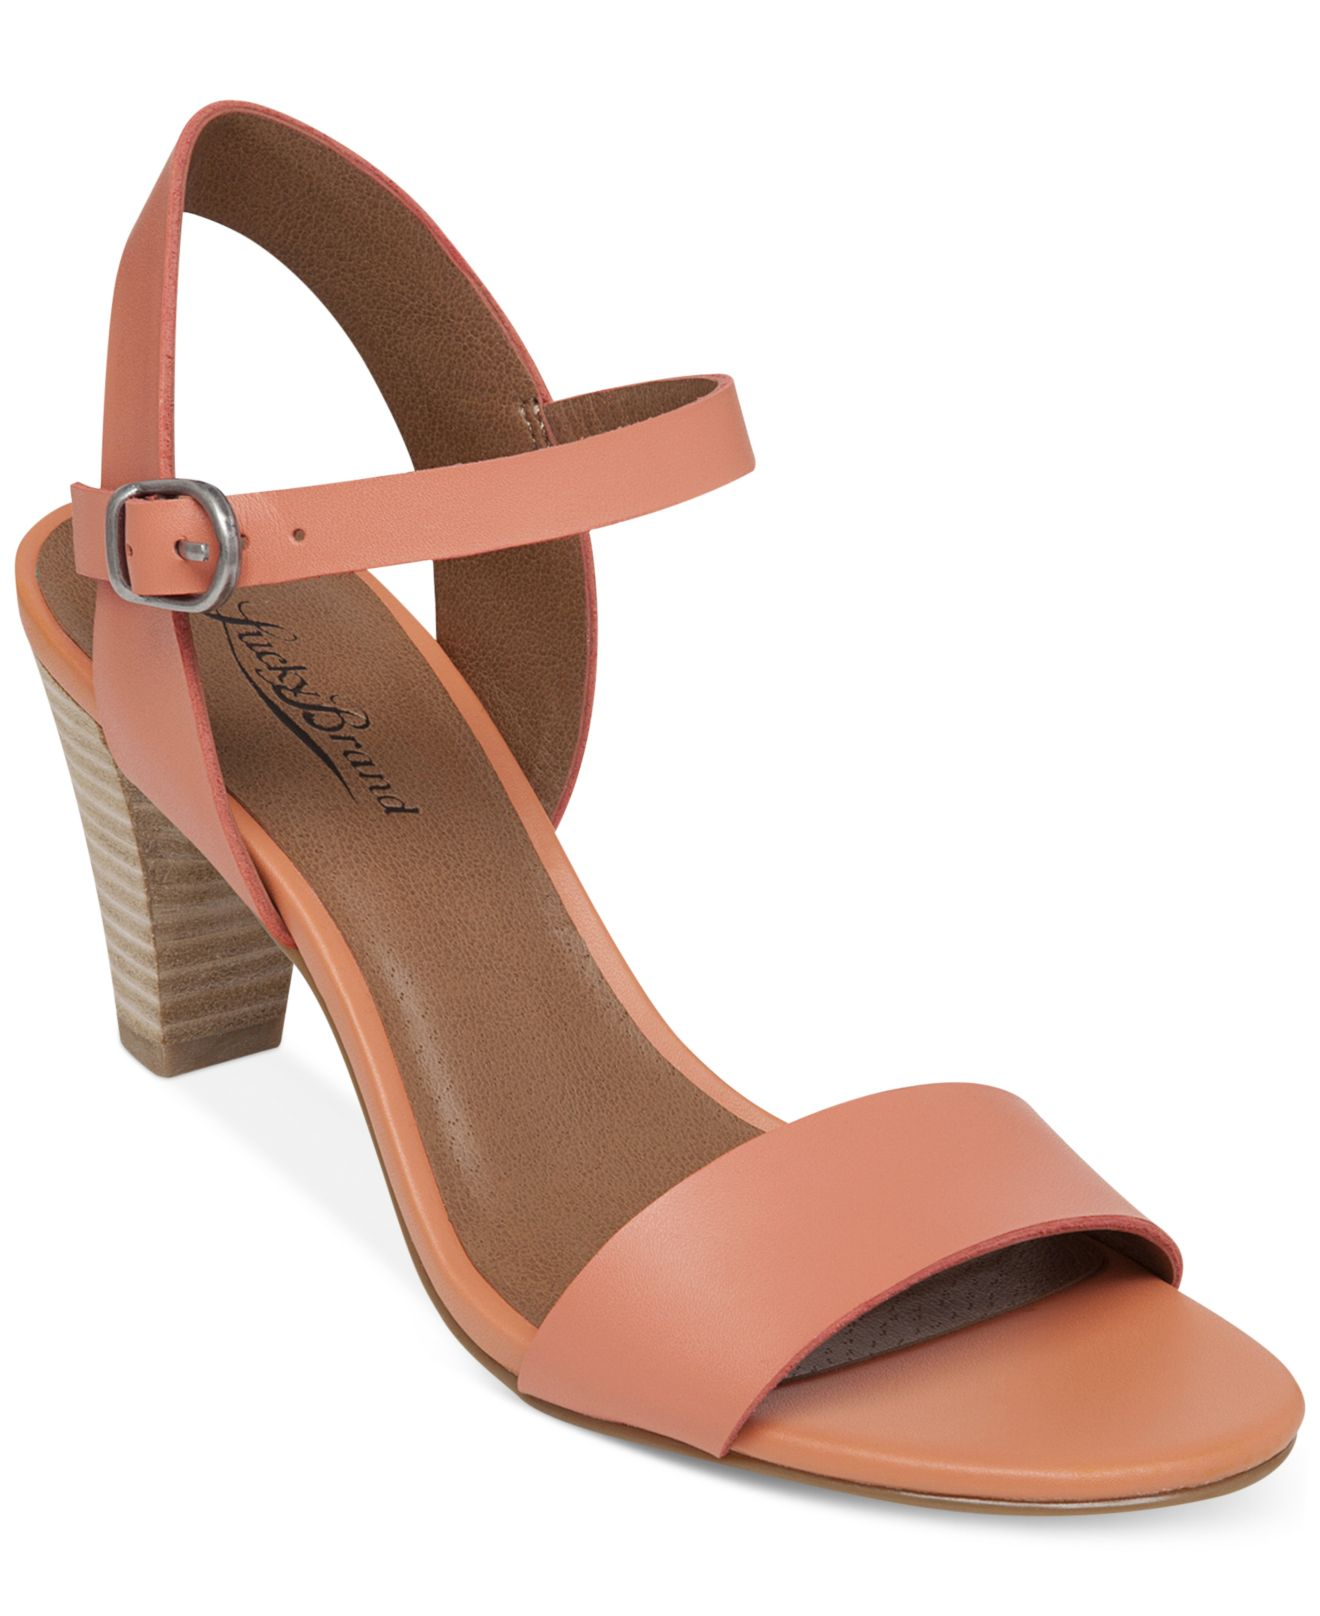 677103ade3c Lyst - Lucky Brand Women S Pepperr Two Piece Mid Heel Sandals in Pink